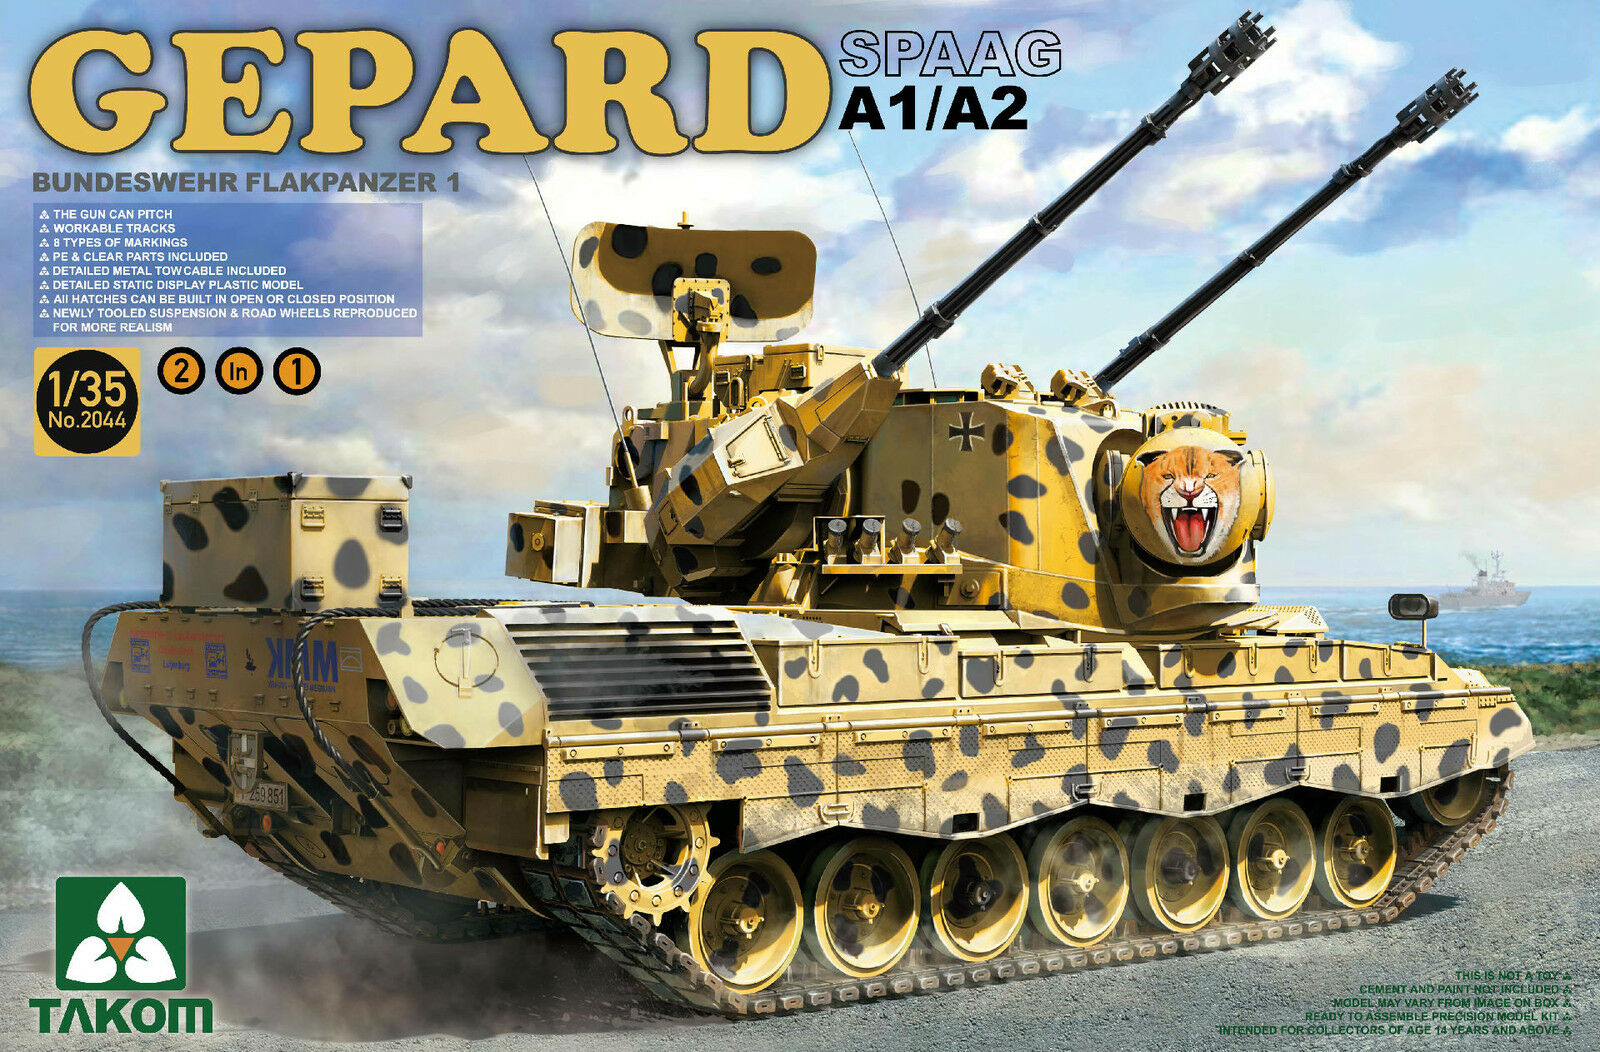 FLAKPANZER I  GEPARD GEPARD GEPARD  A1 A2 - KIT TAKOM INTERNATIONAL 1 35 n° 2044 31b5b7